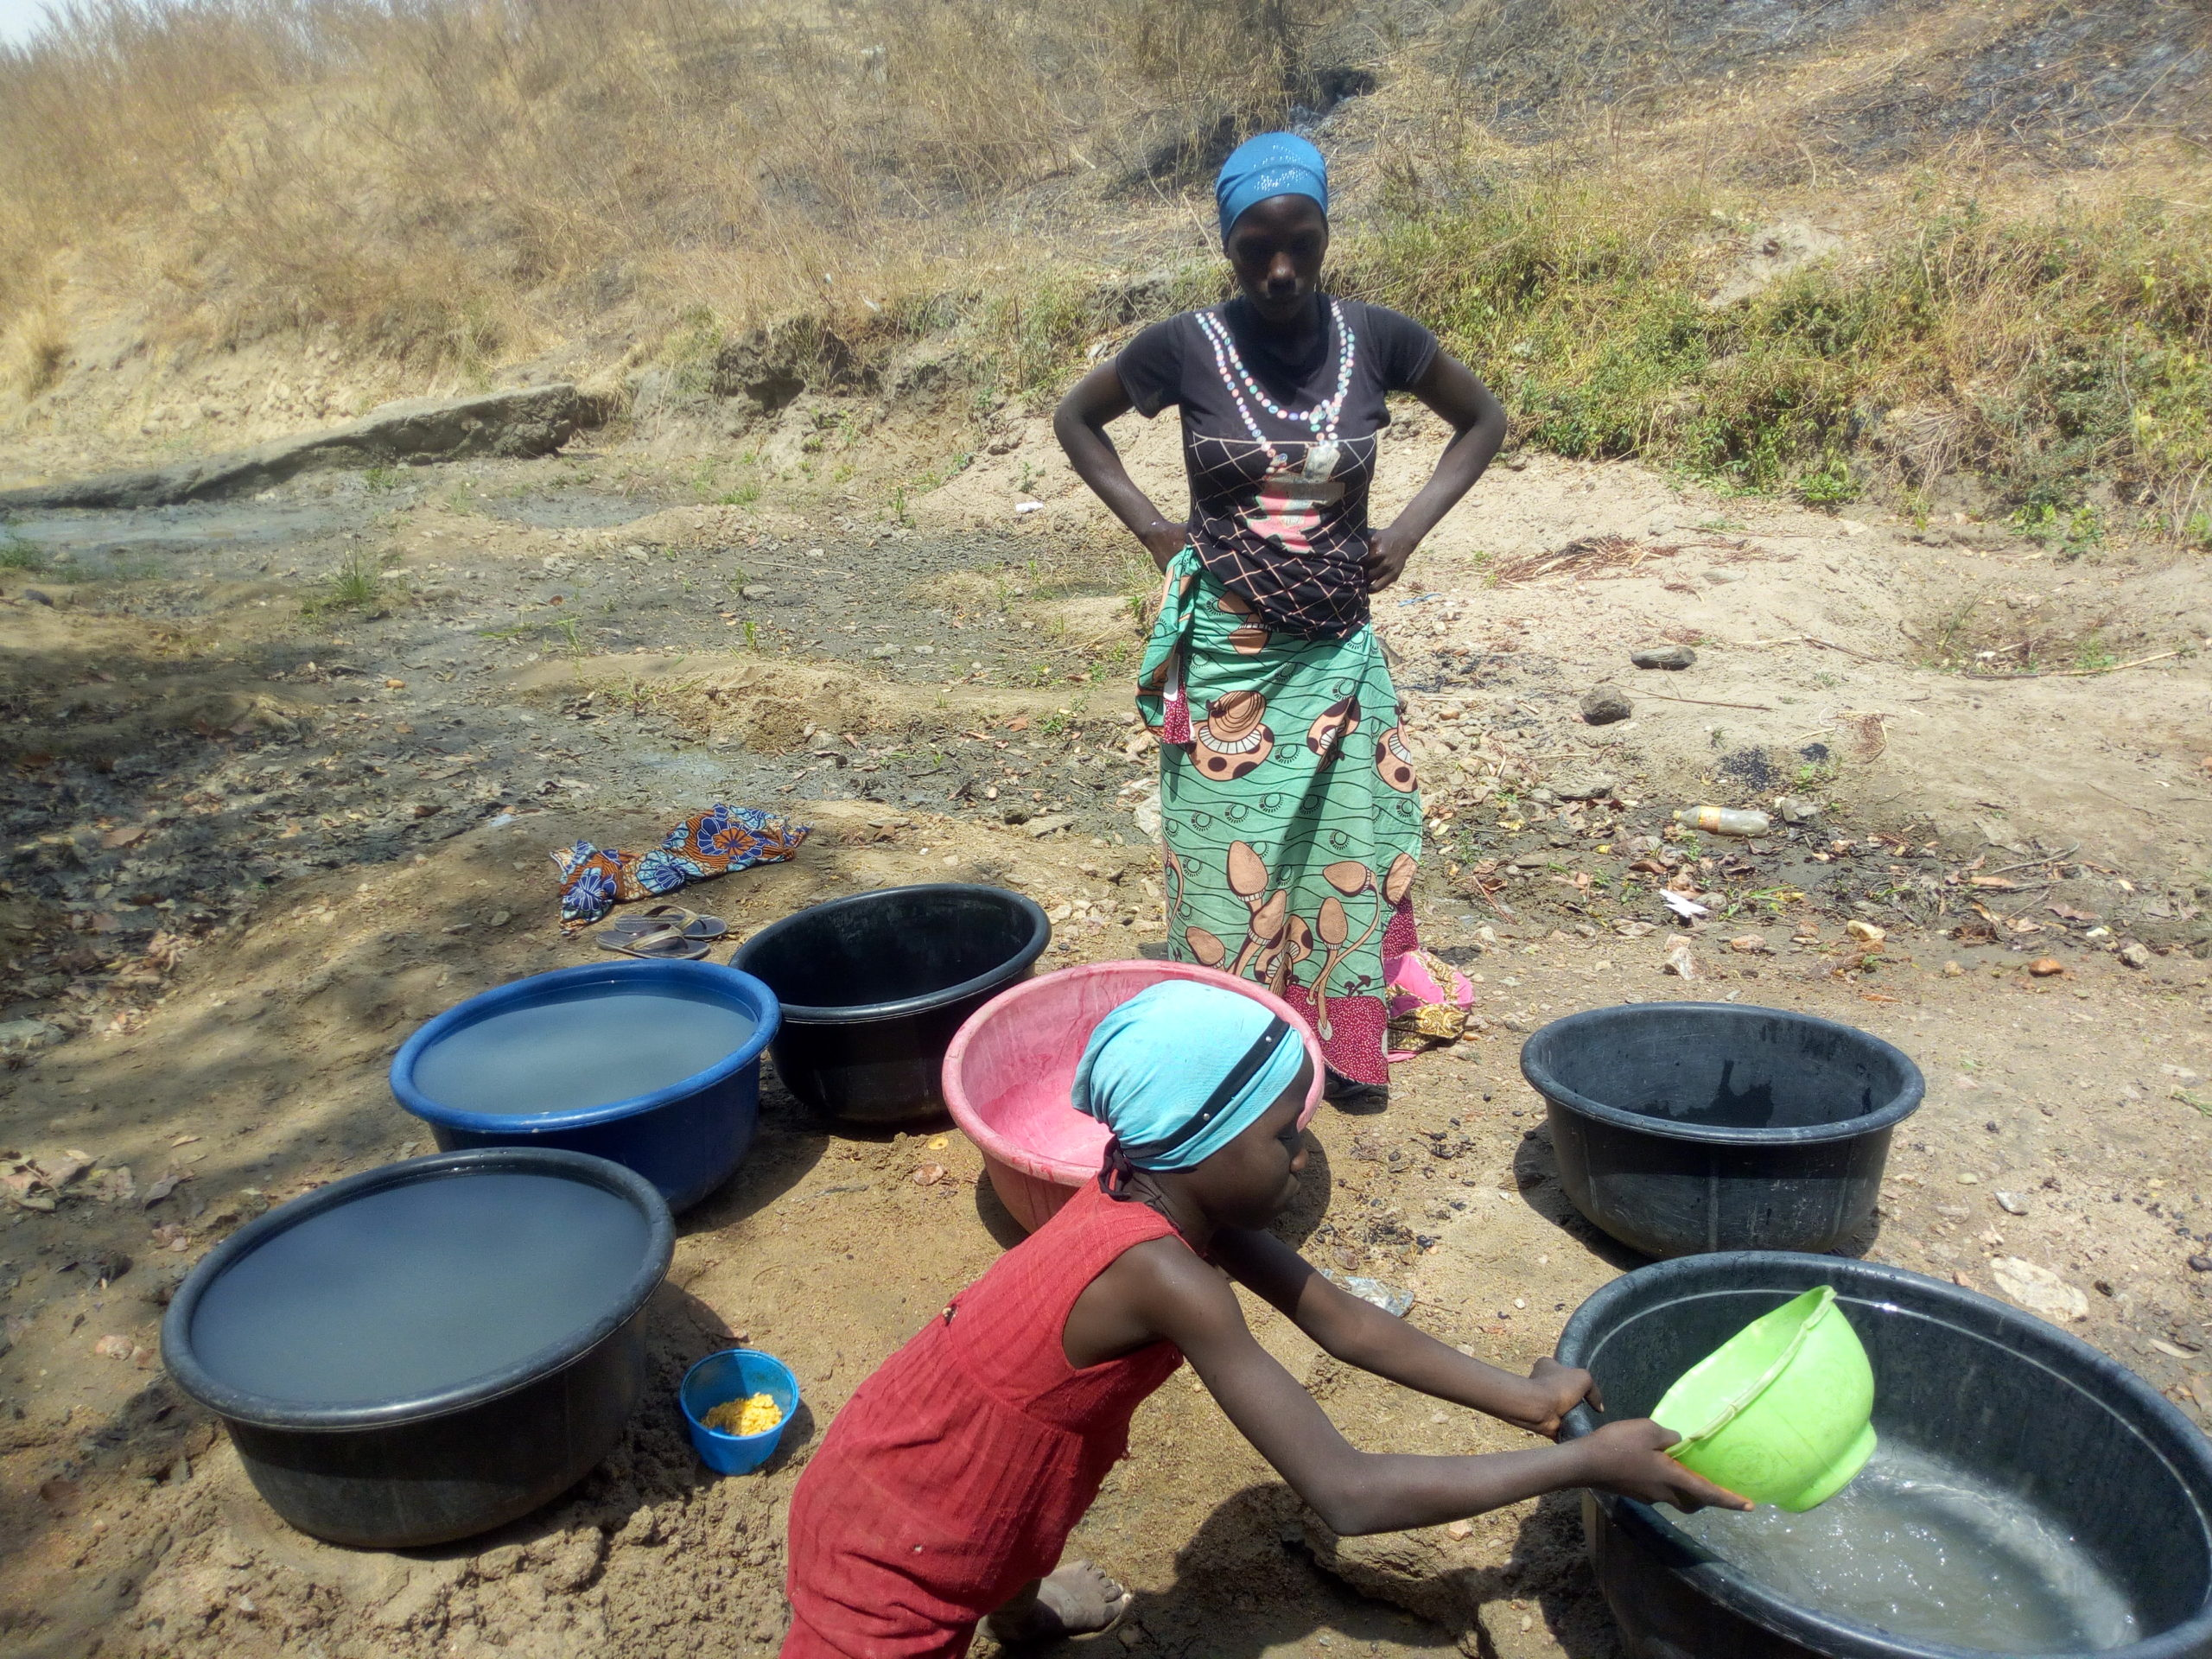 A housewife and her 8-year-old daughter scooping muddied water for domestic use at Wuna community.